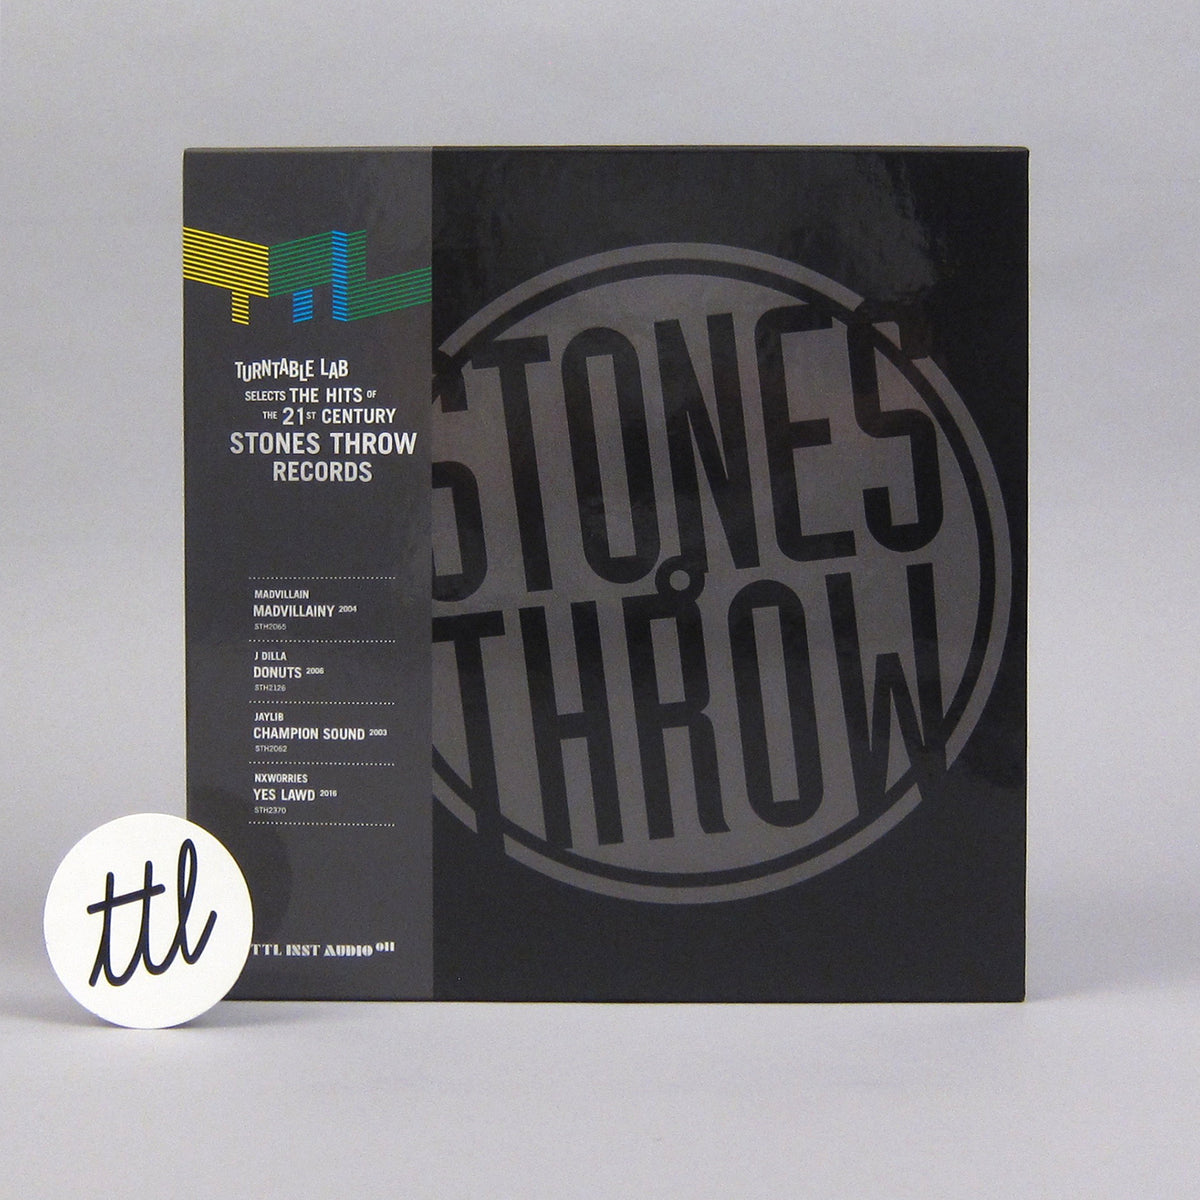 Stones Throw: Turntable Lab Selects... Vinyl 8LP Boxset - Exclusive - LIMIT 1 PER CUSTOMER